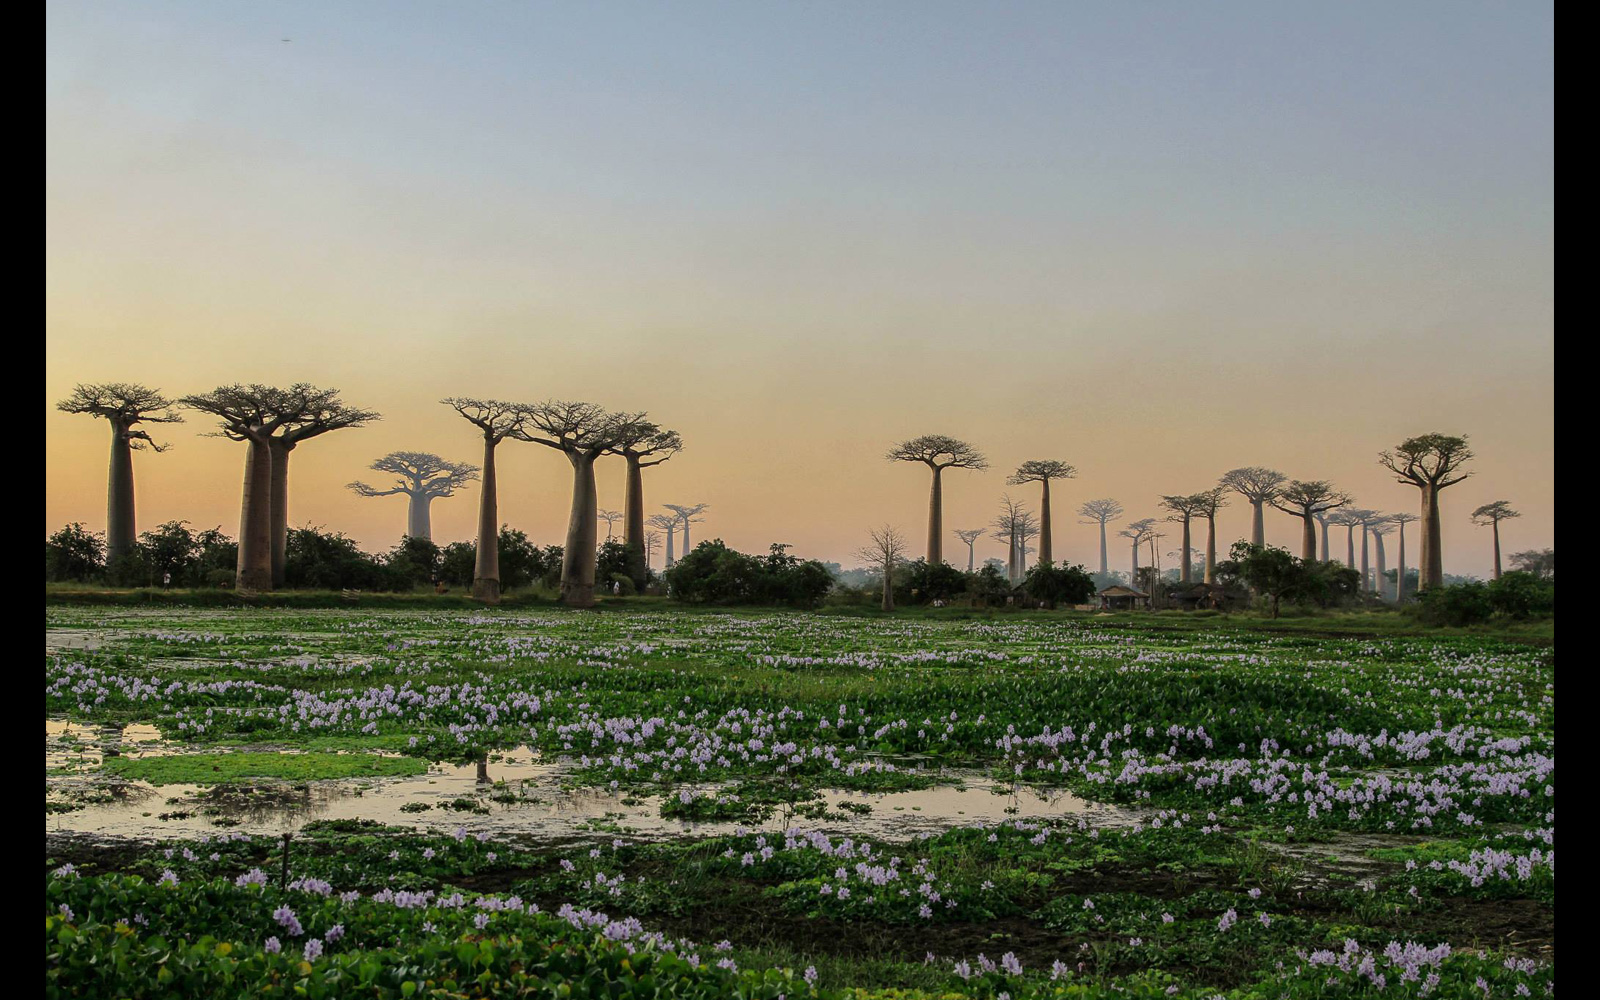 Moments before dusk at a swamp near the 'Avenue of the Baobabs' in western Madagascar © Pedro Ferreira do Amaral